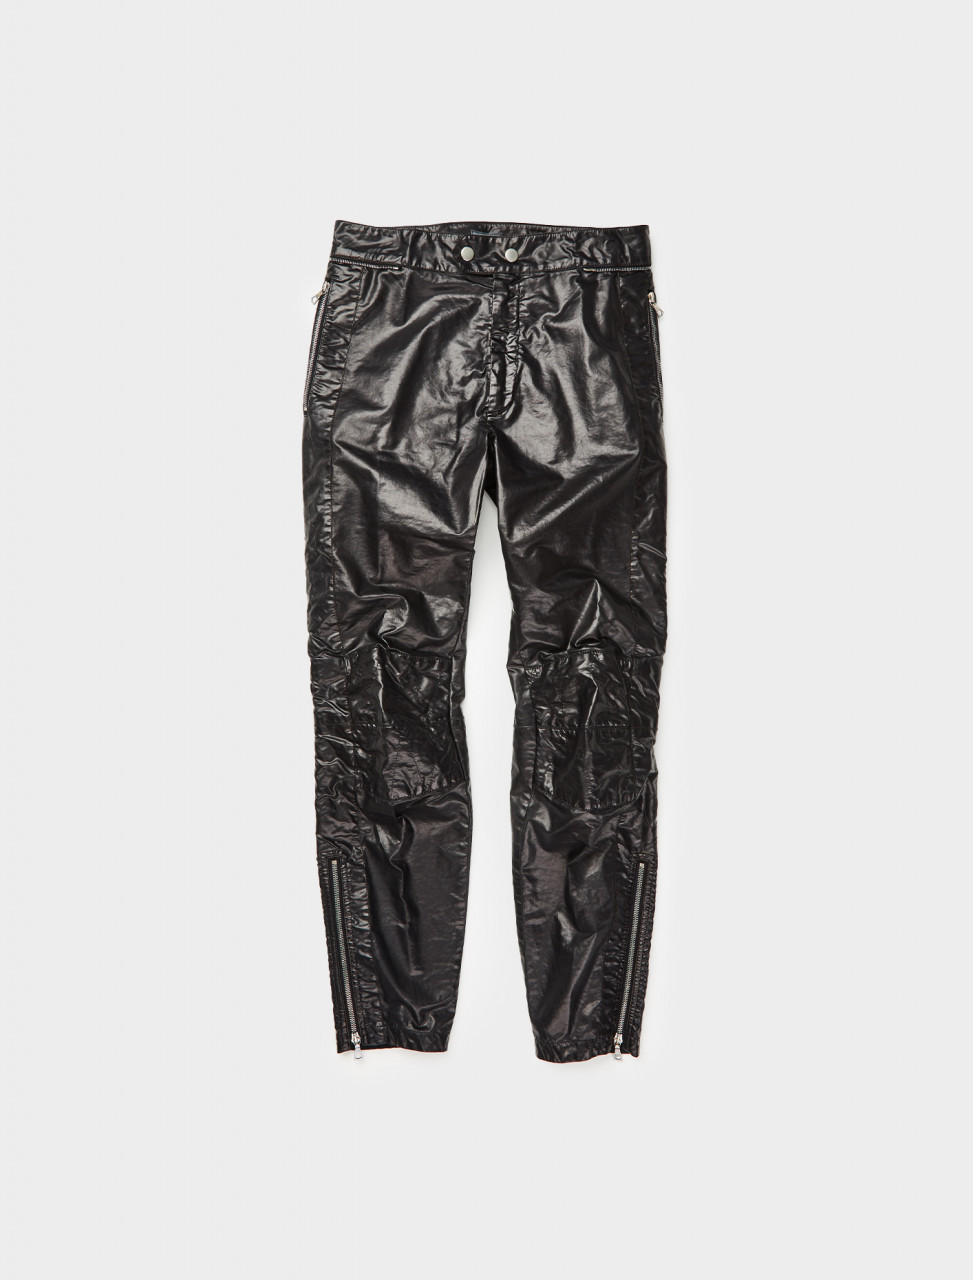 260-202-20930-1176-900 DRIES VAN NOTEN PELGRAVE COATED COTTON TROUSERS BLACK